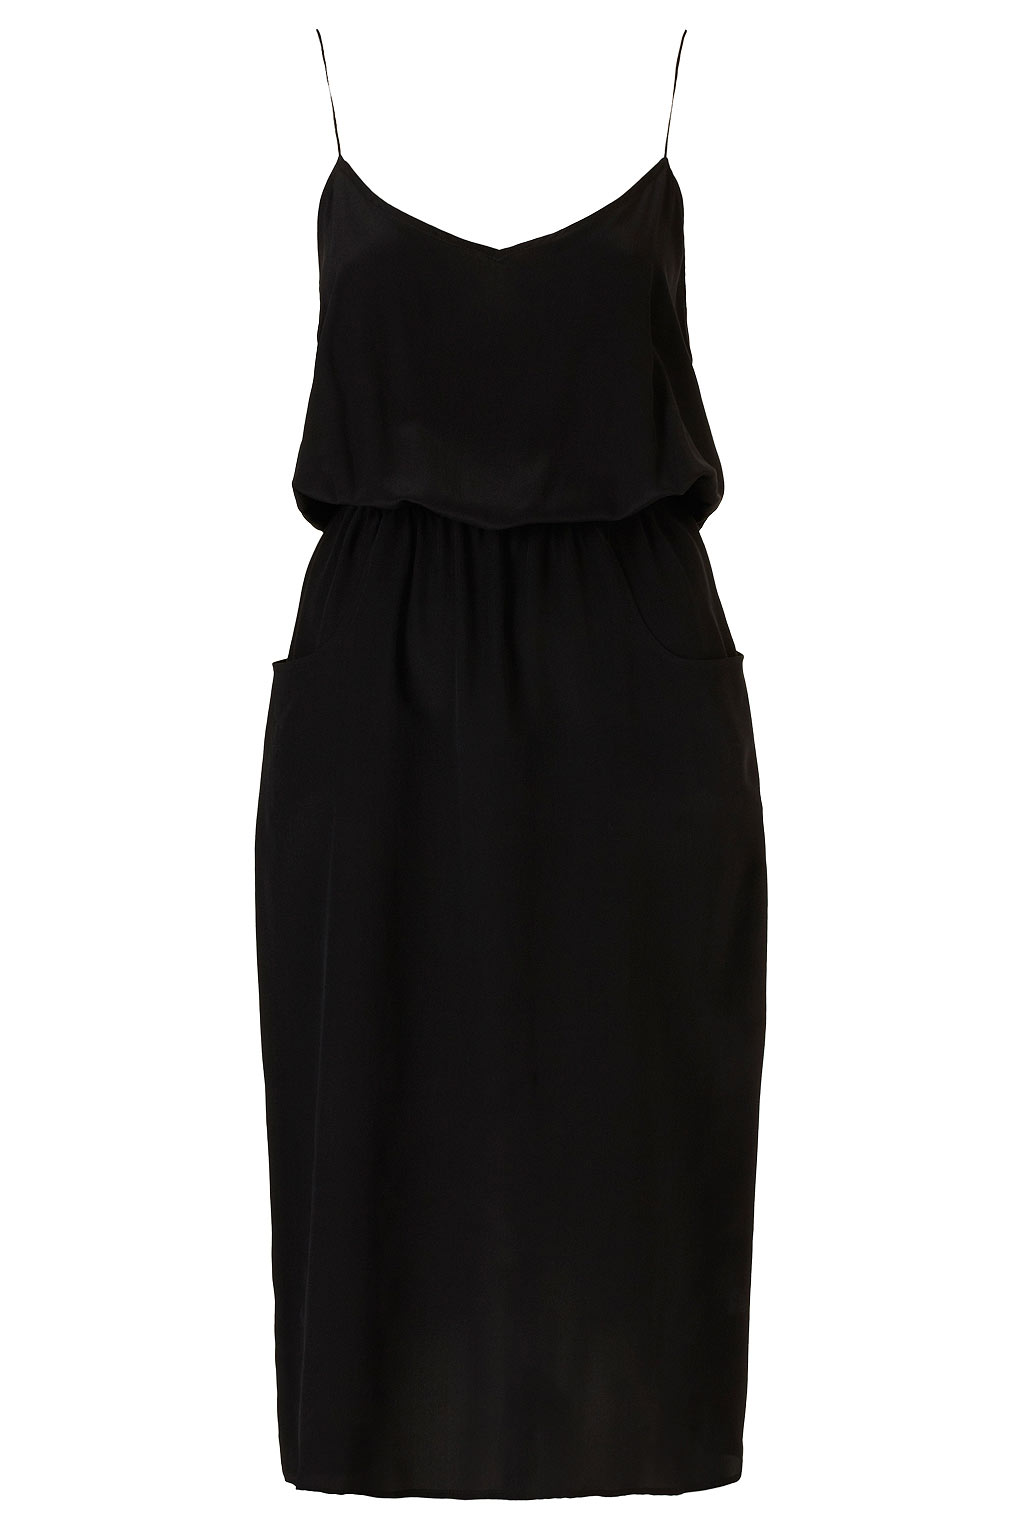 Topshop Silk Midi Pocket Dress By Boutique in Black | Lyst